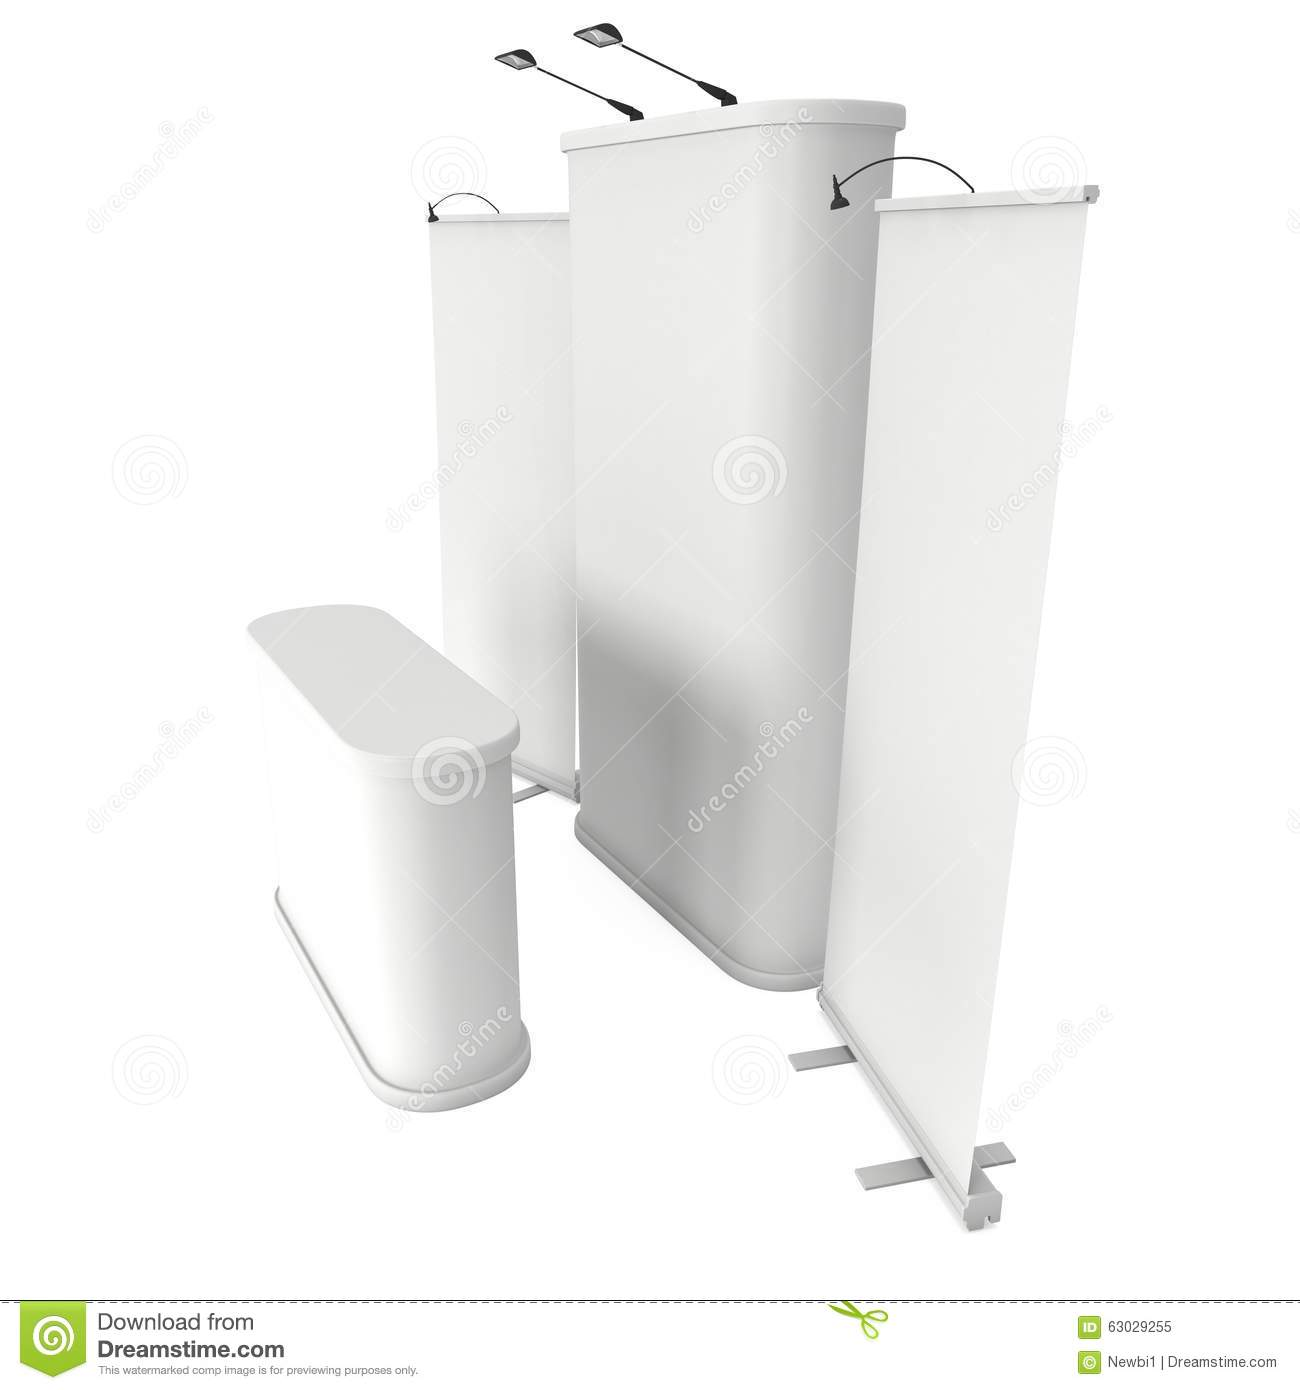 Exhibition Booth Template Free : Roll up and pop banner stands stock illustration